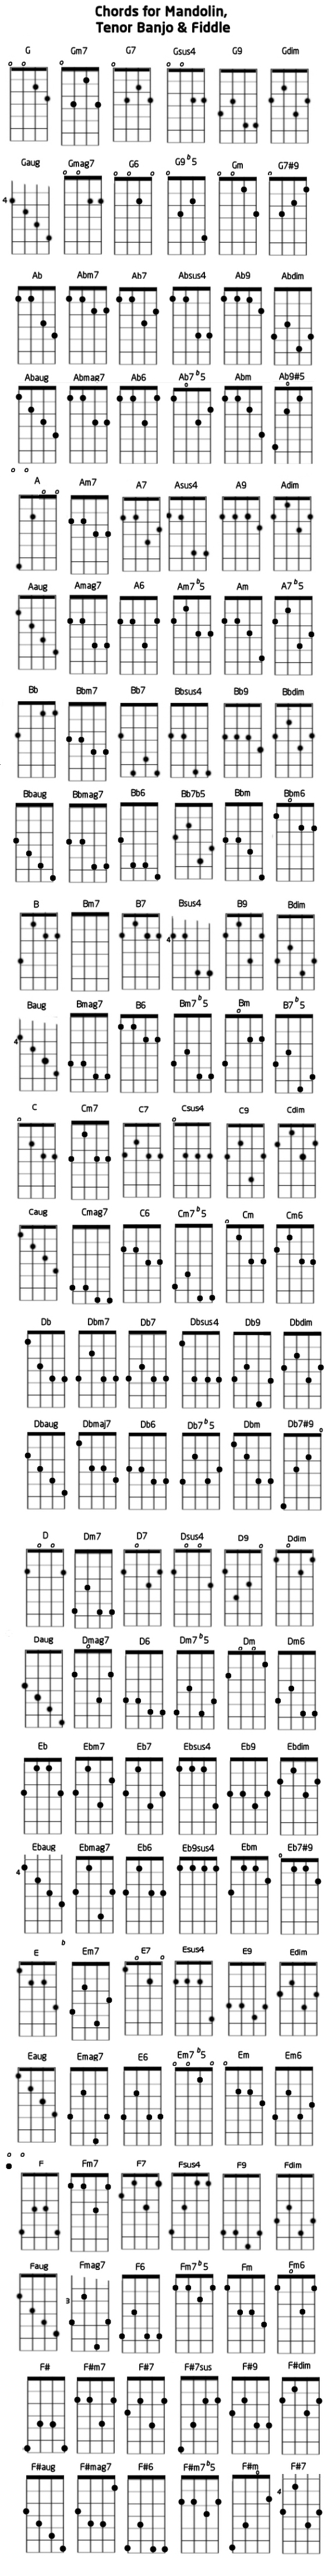 Chords for Tenor Banjo submited images : Pic2Fly